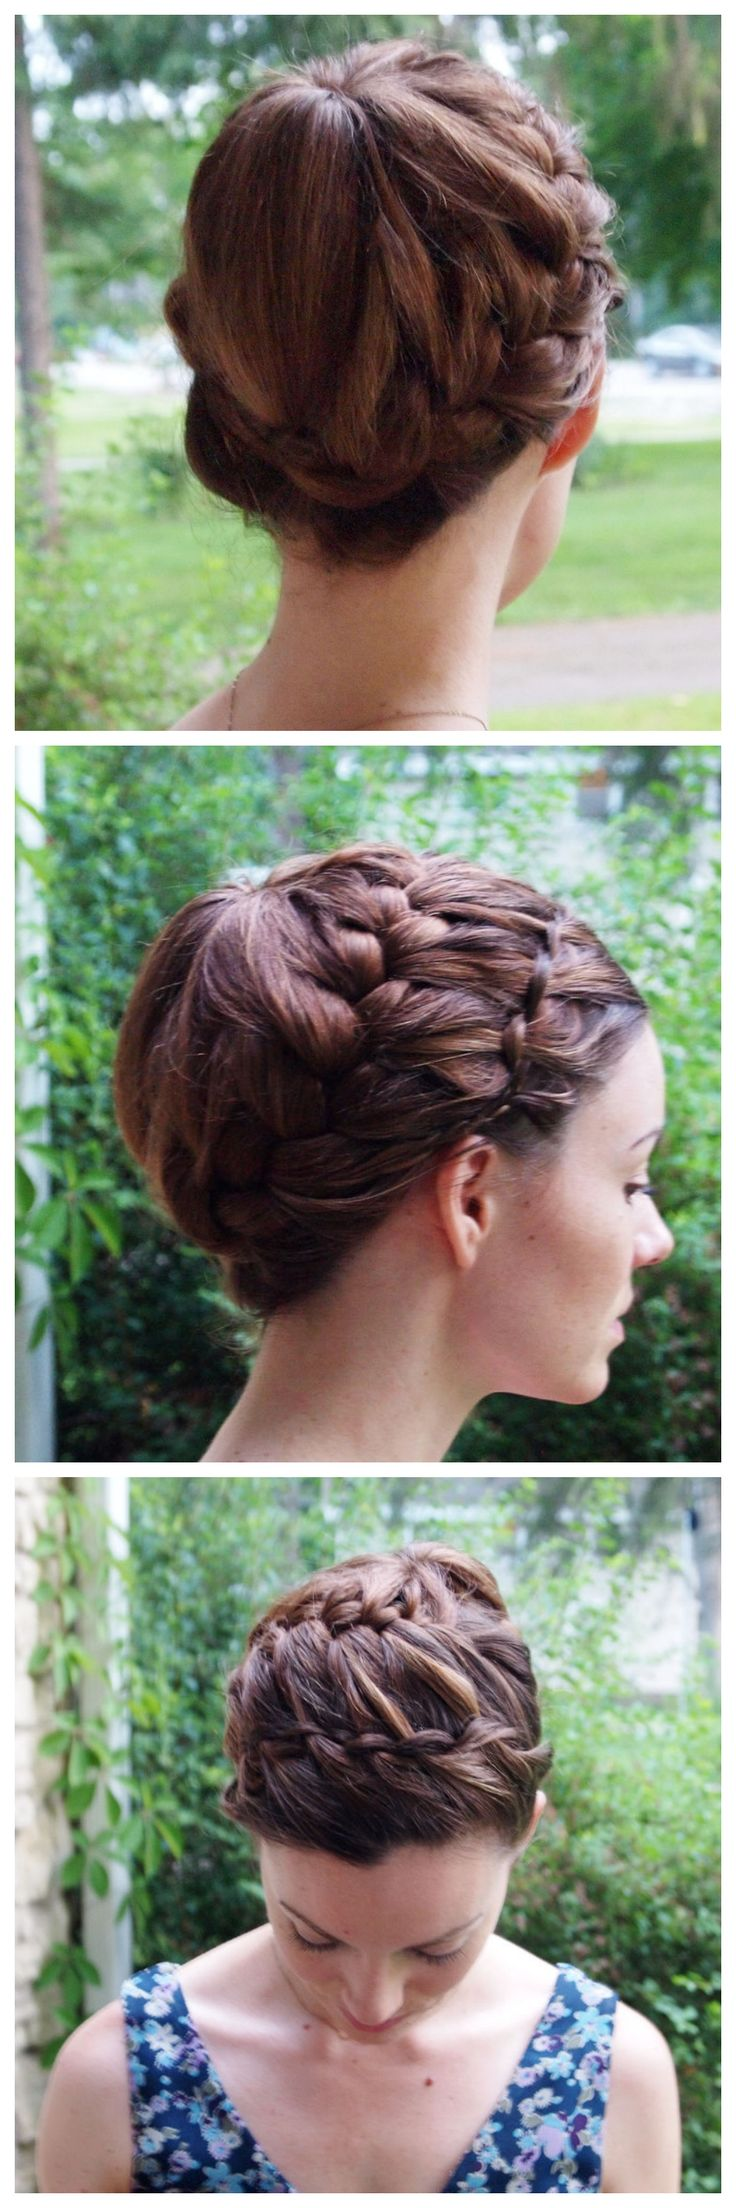 French Braid Updo Hairstyles 127 Best Images About Hairstyles On Pinterest How To Braid